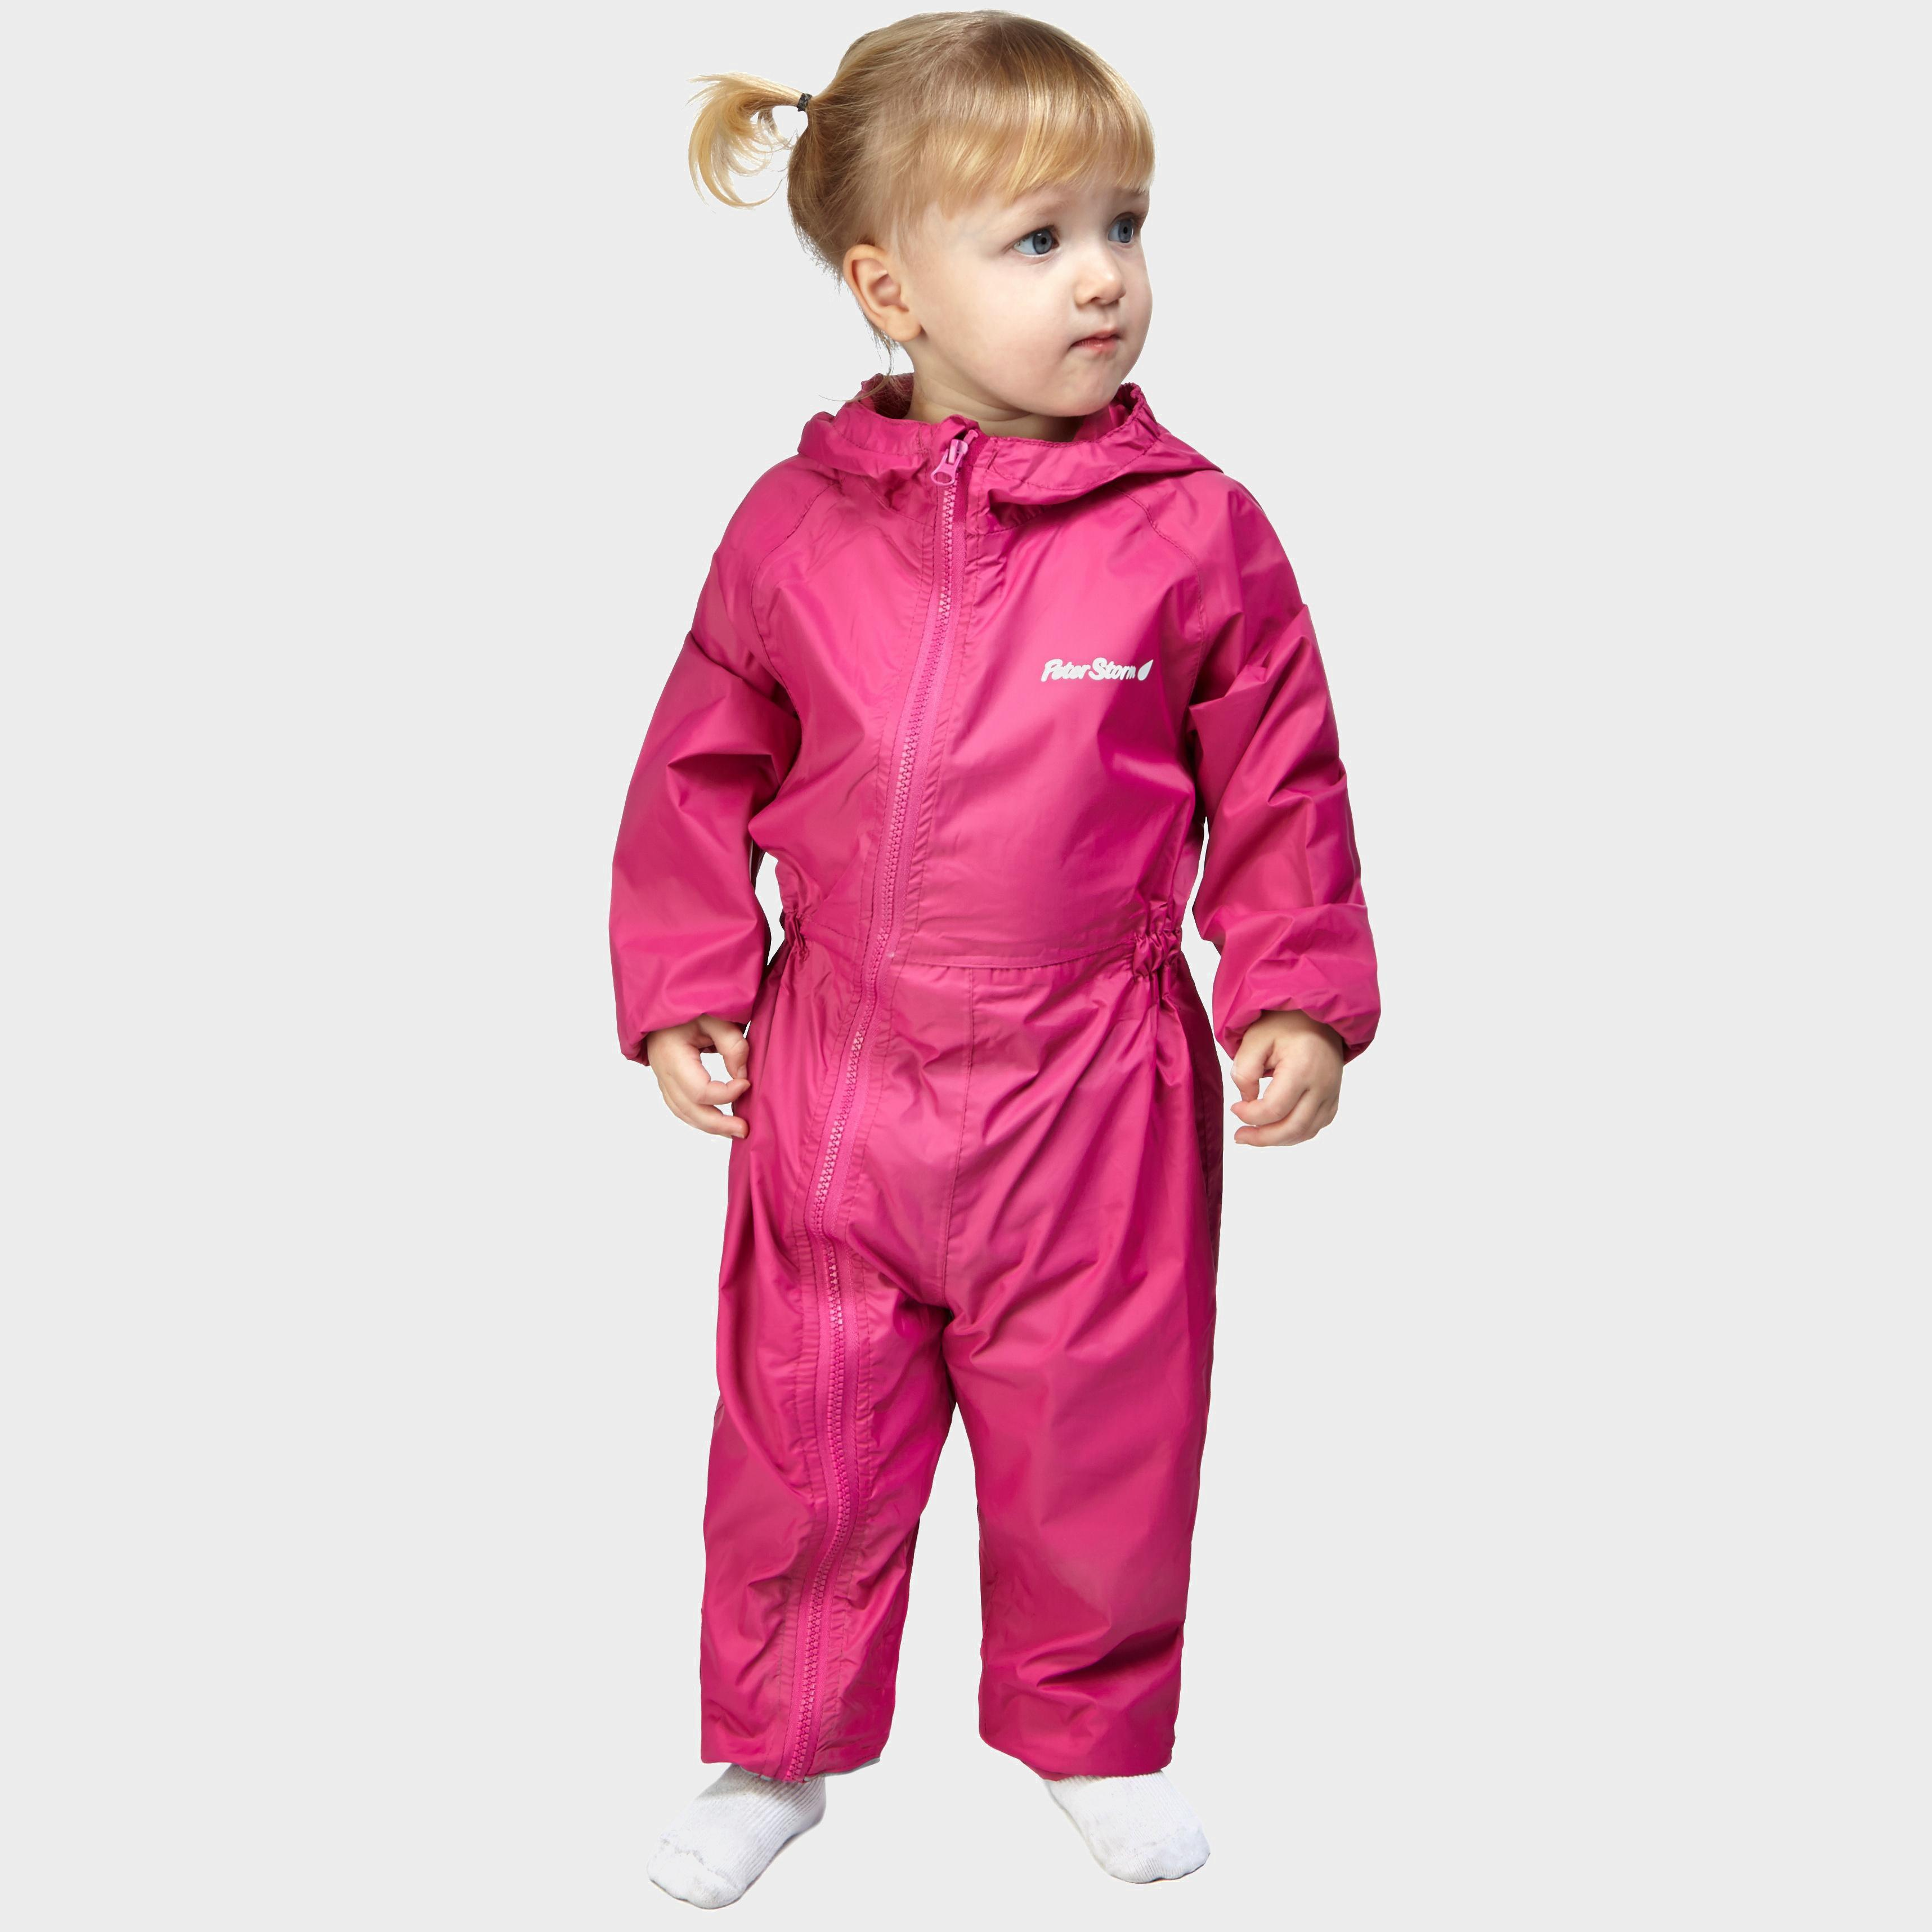 View all kids clothing Be prepared for any weather condition with our massive selection of kids waterproofs. We have everything you need to keep the rain out and the warm in. We also have a huge adult waterproof jackets collection from some of the best brands in outdoors.